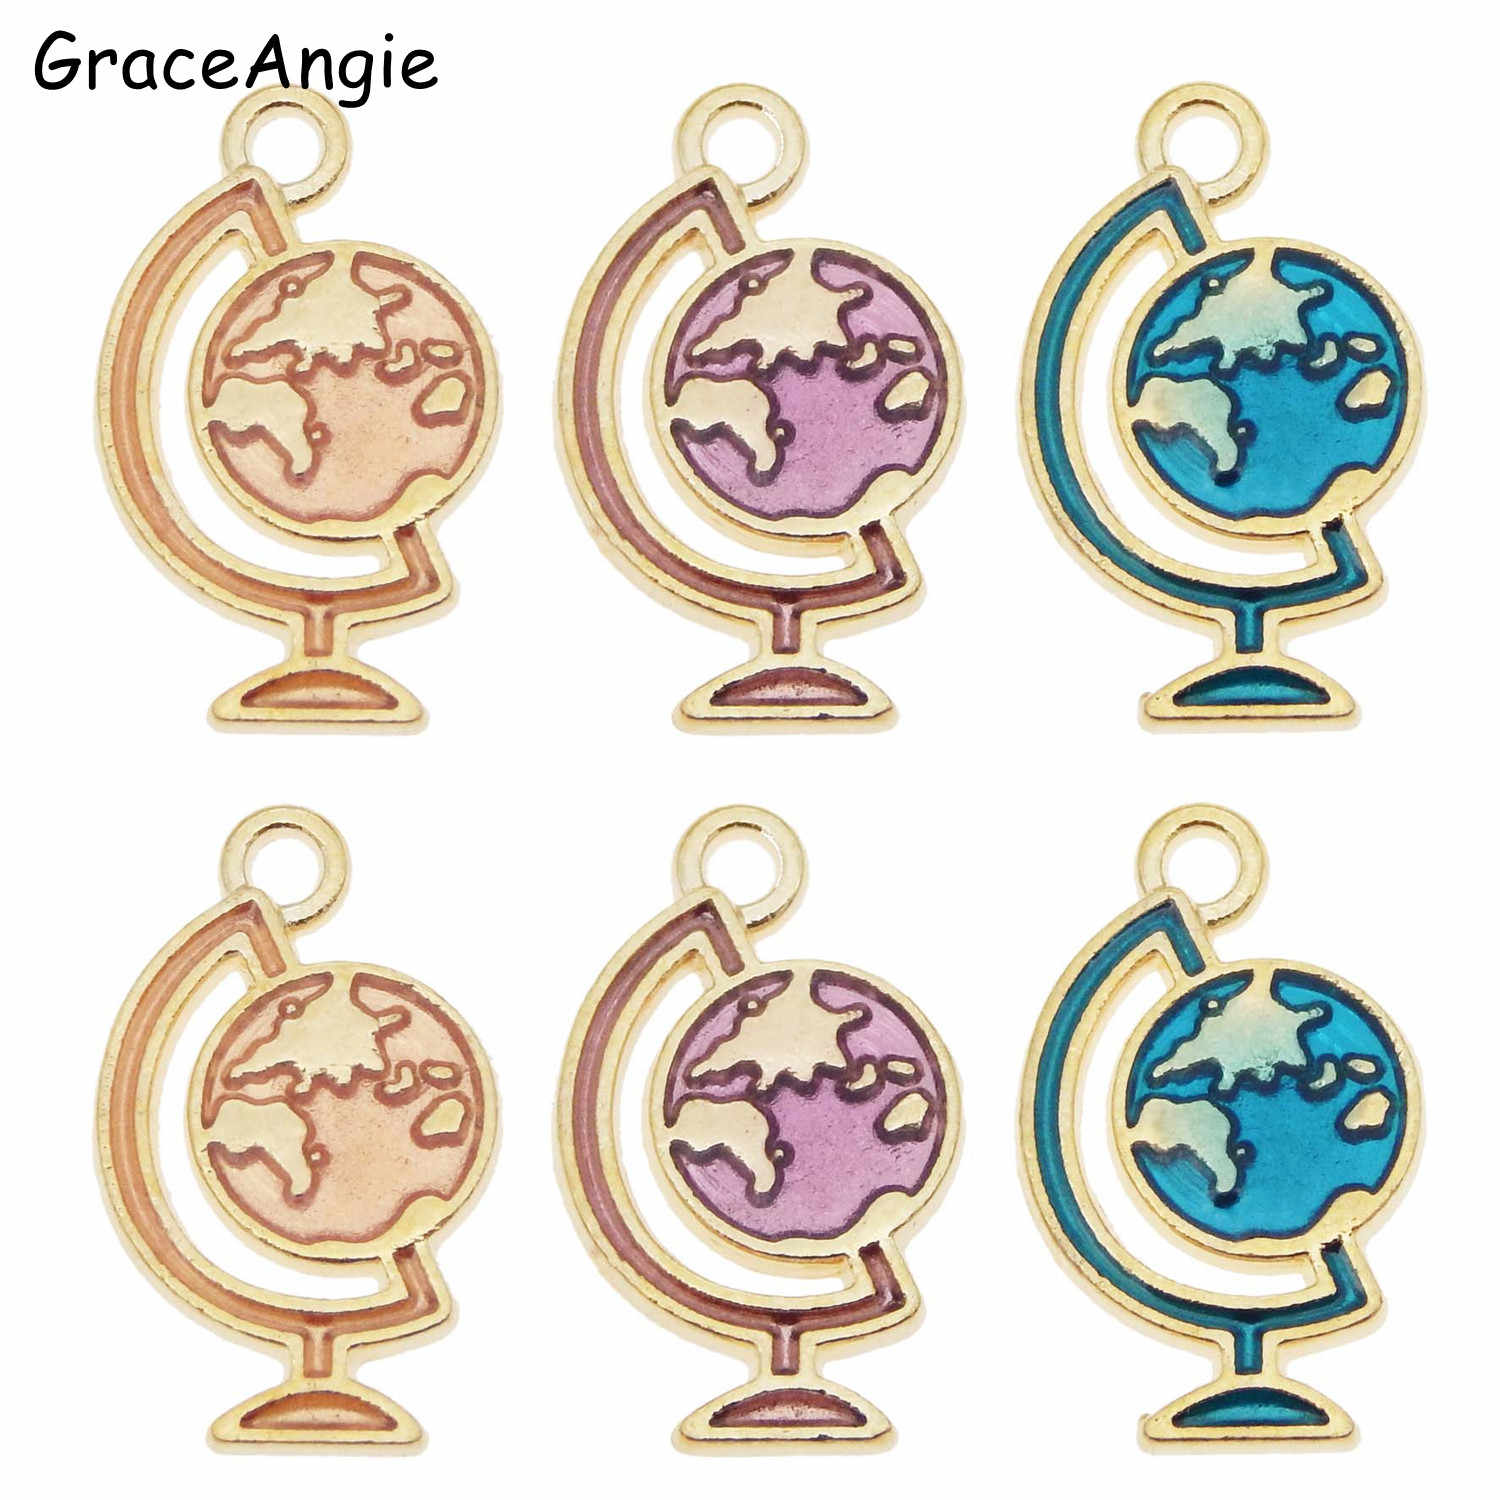 12pcs/lot  Enamel Globe Universe Planet Jewelry Accessories Charm Pendant Alloy Enamel  Star Charm Pendant DIY Earrings Necklace